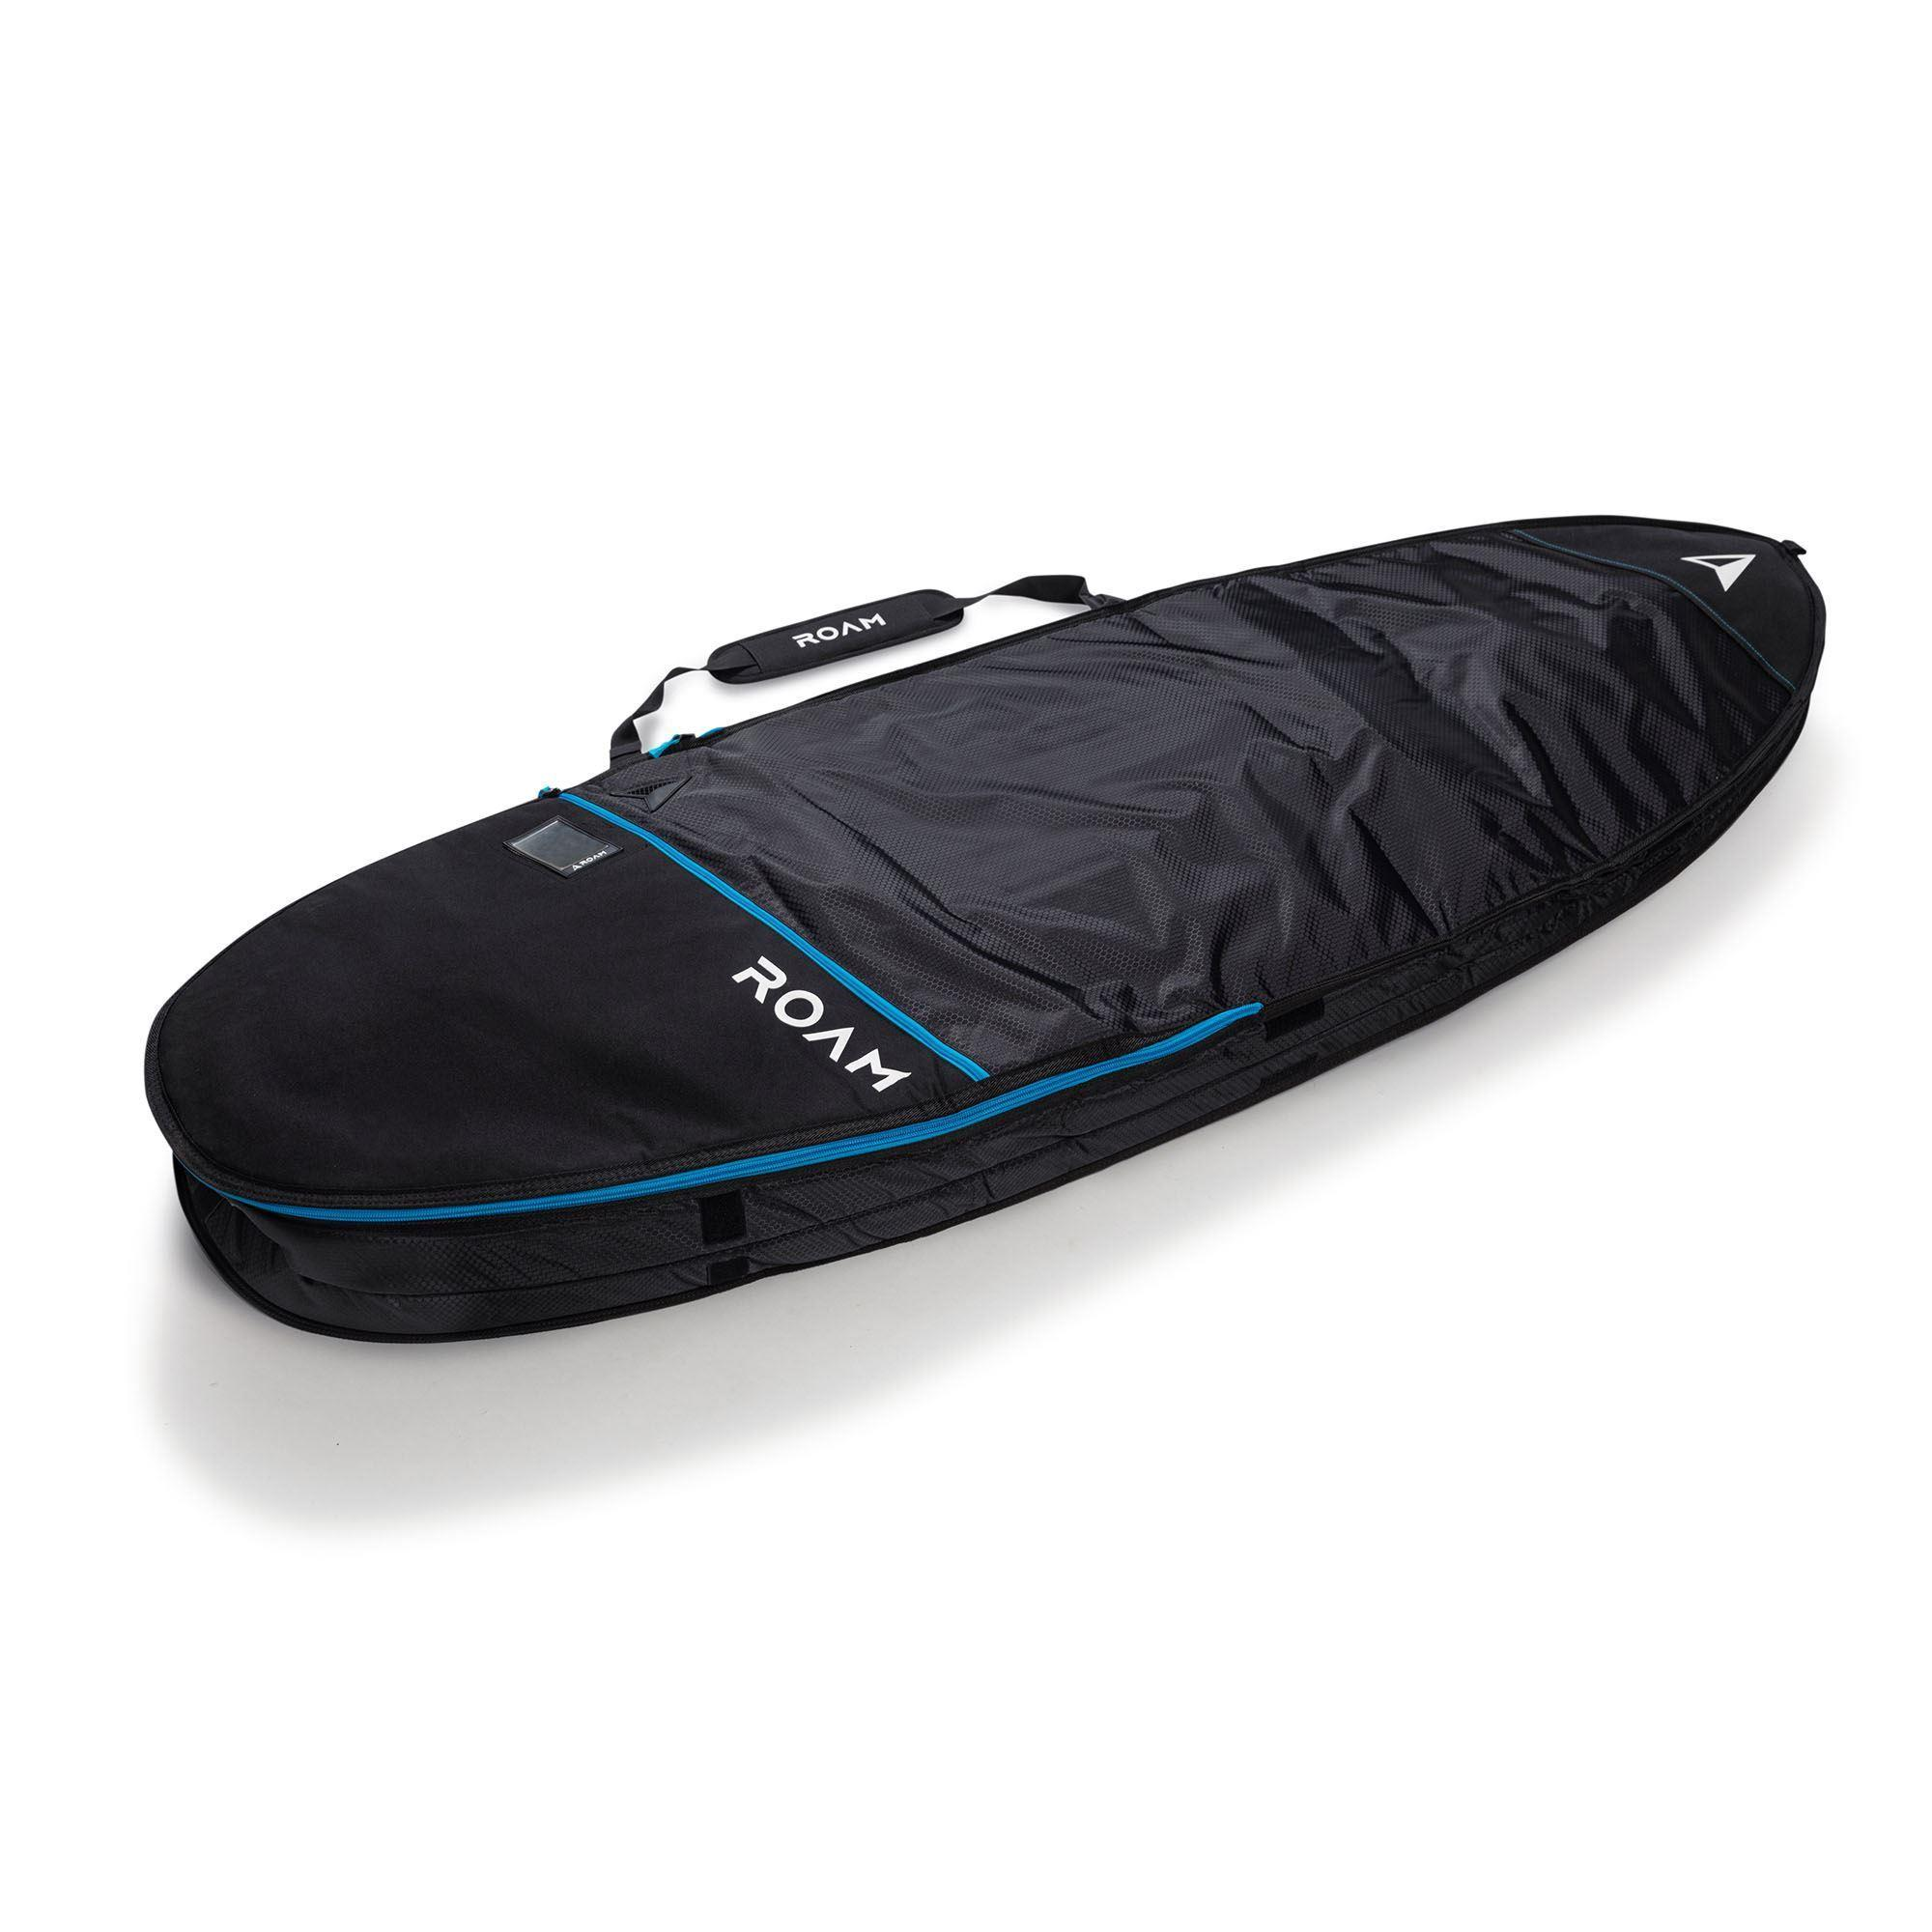 ROAM Boardbag Surfboard Tech Bag Doppel Fun 7.6